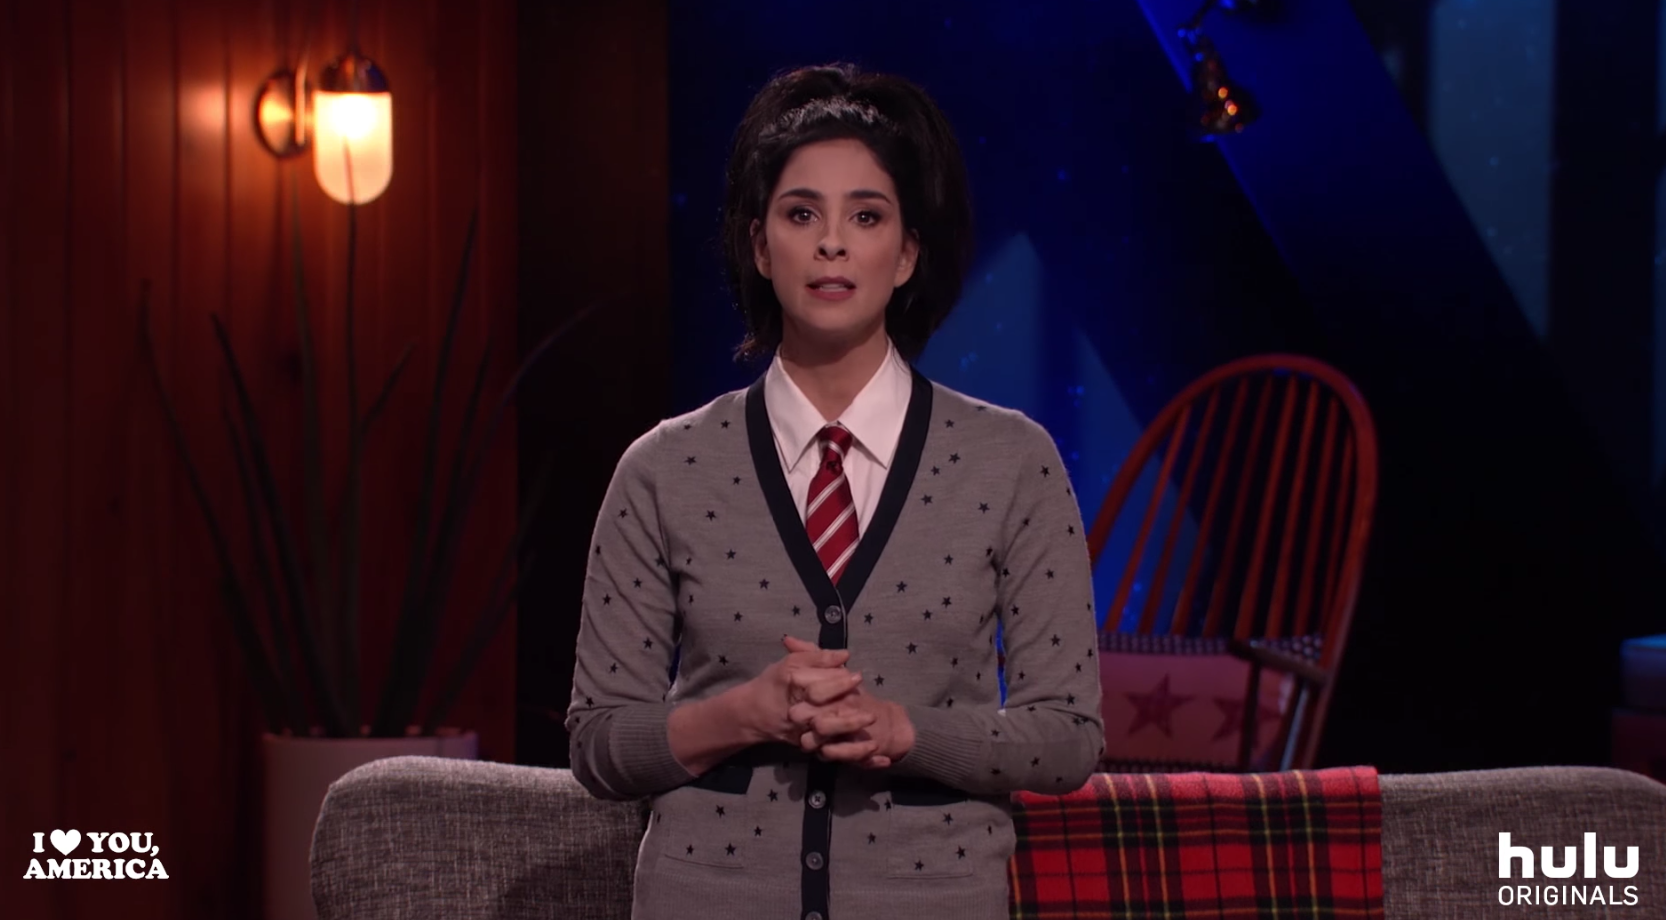 Sarah Silverman responds to Louis CK allegations with painful honesty